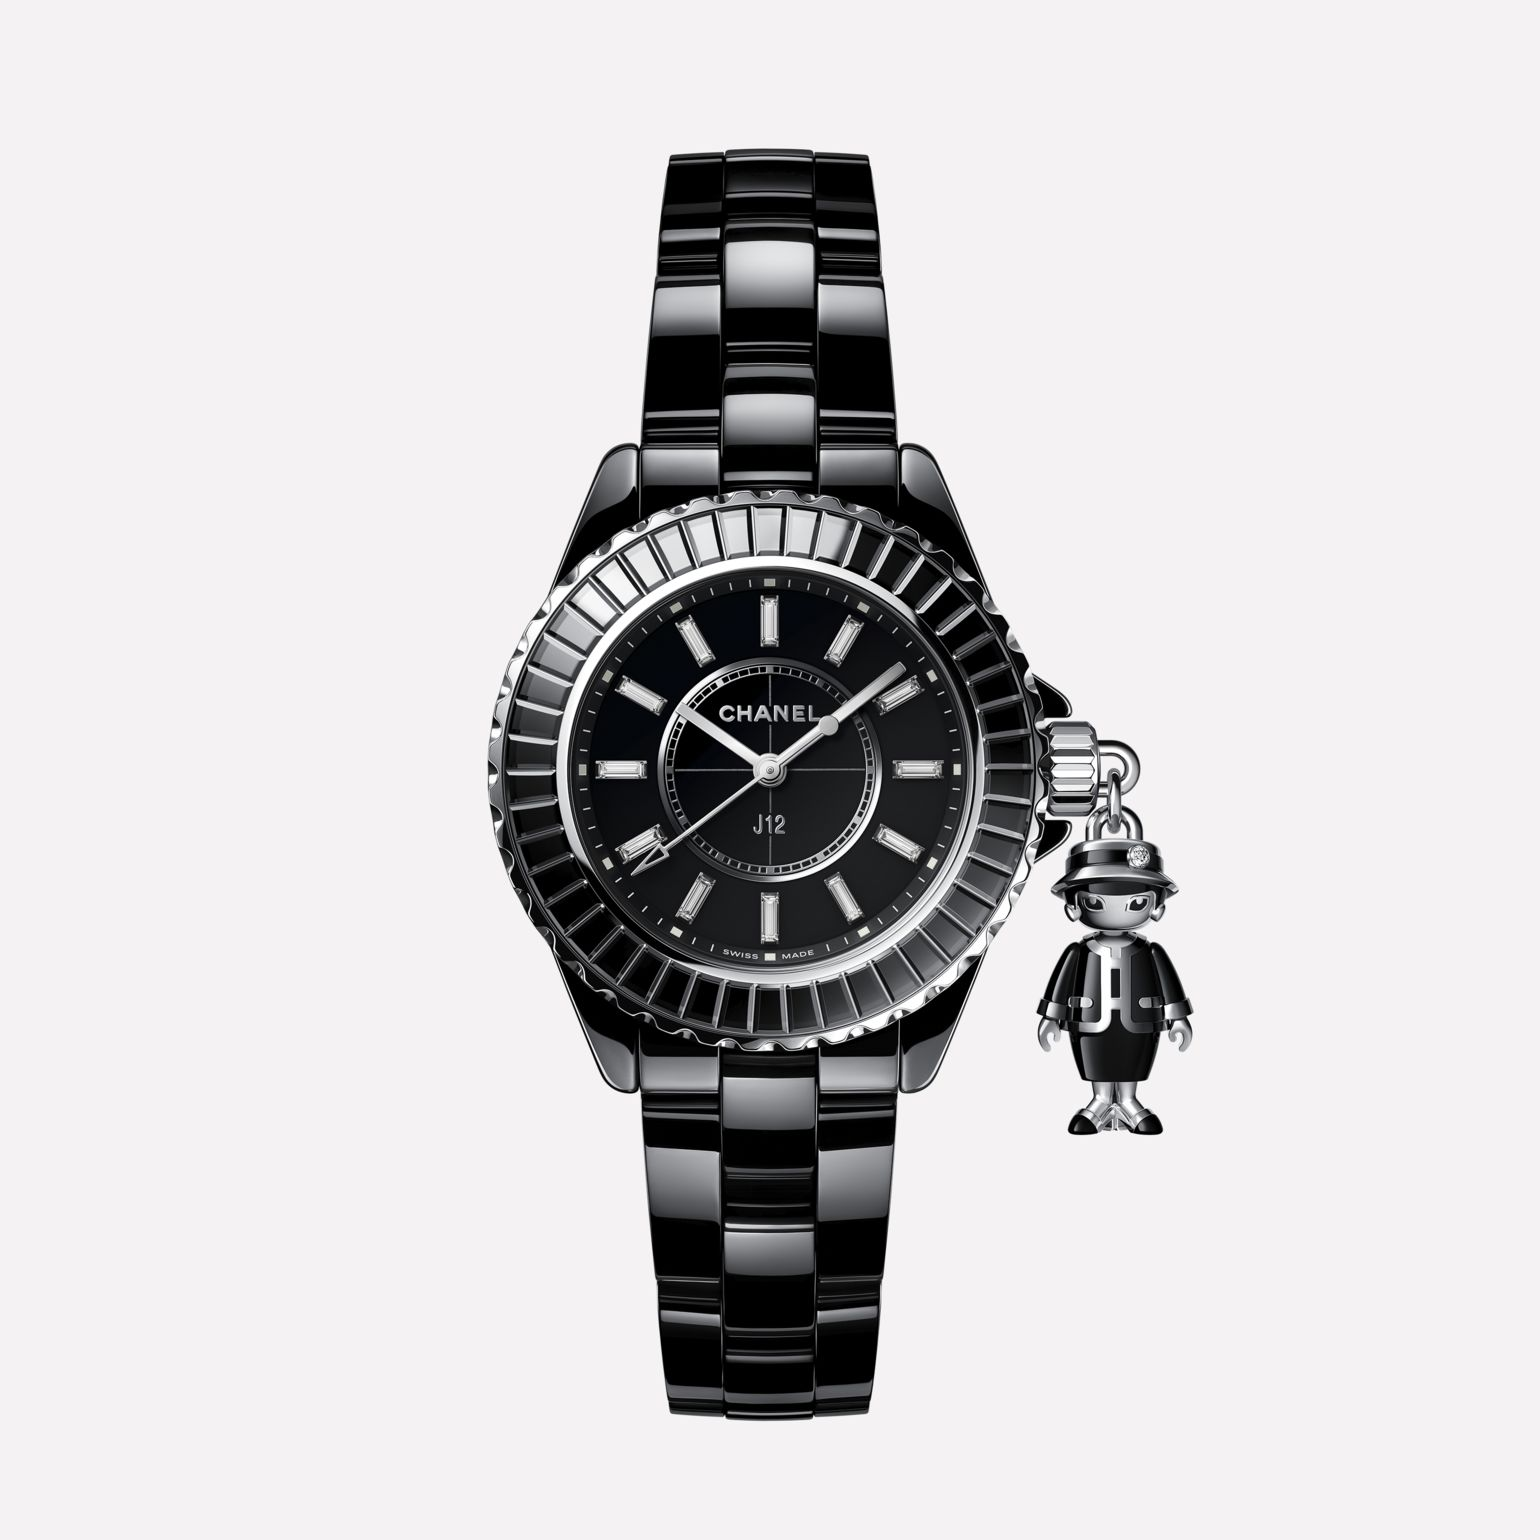 Mademoiselle J12 Acte II Watch, 33 mm Black highly resistant ceramic, 18K white gold and diamonds